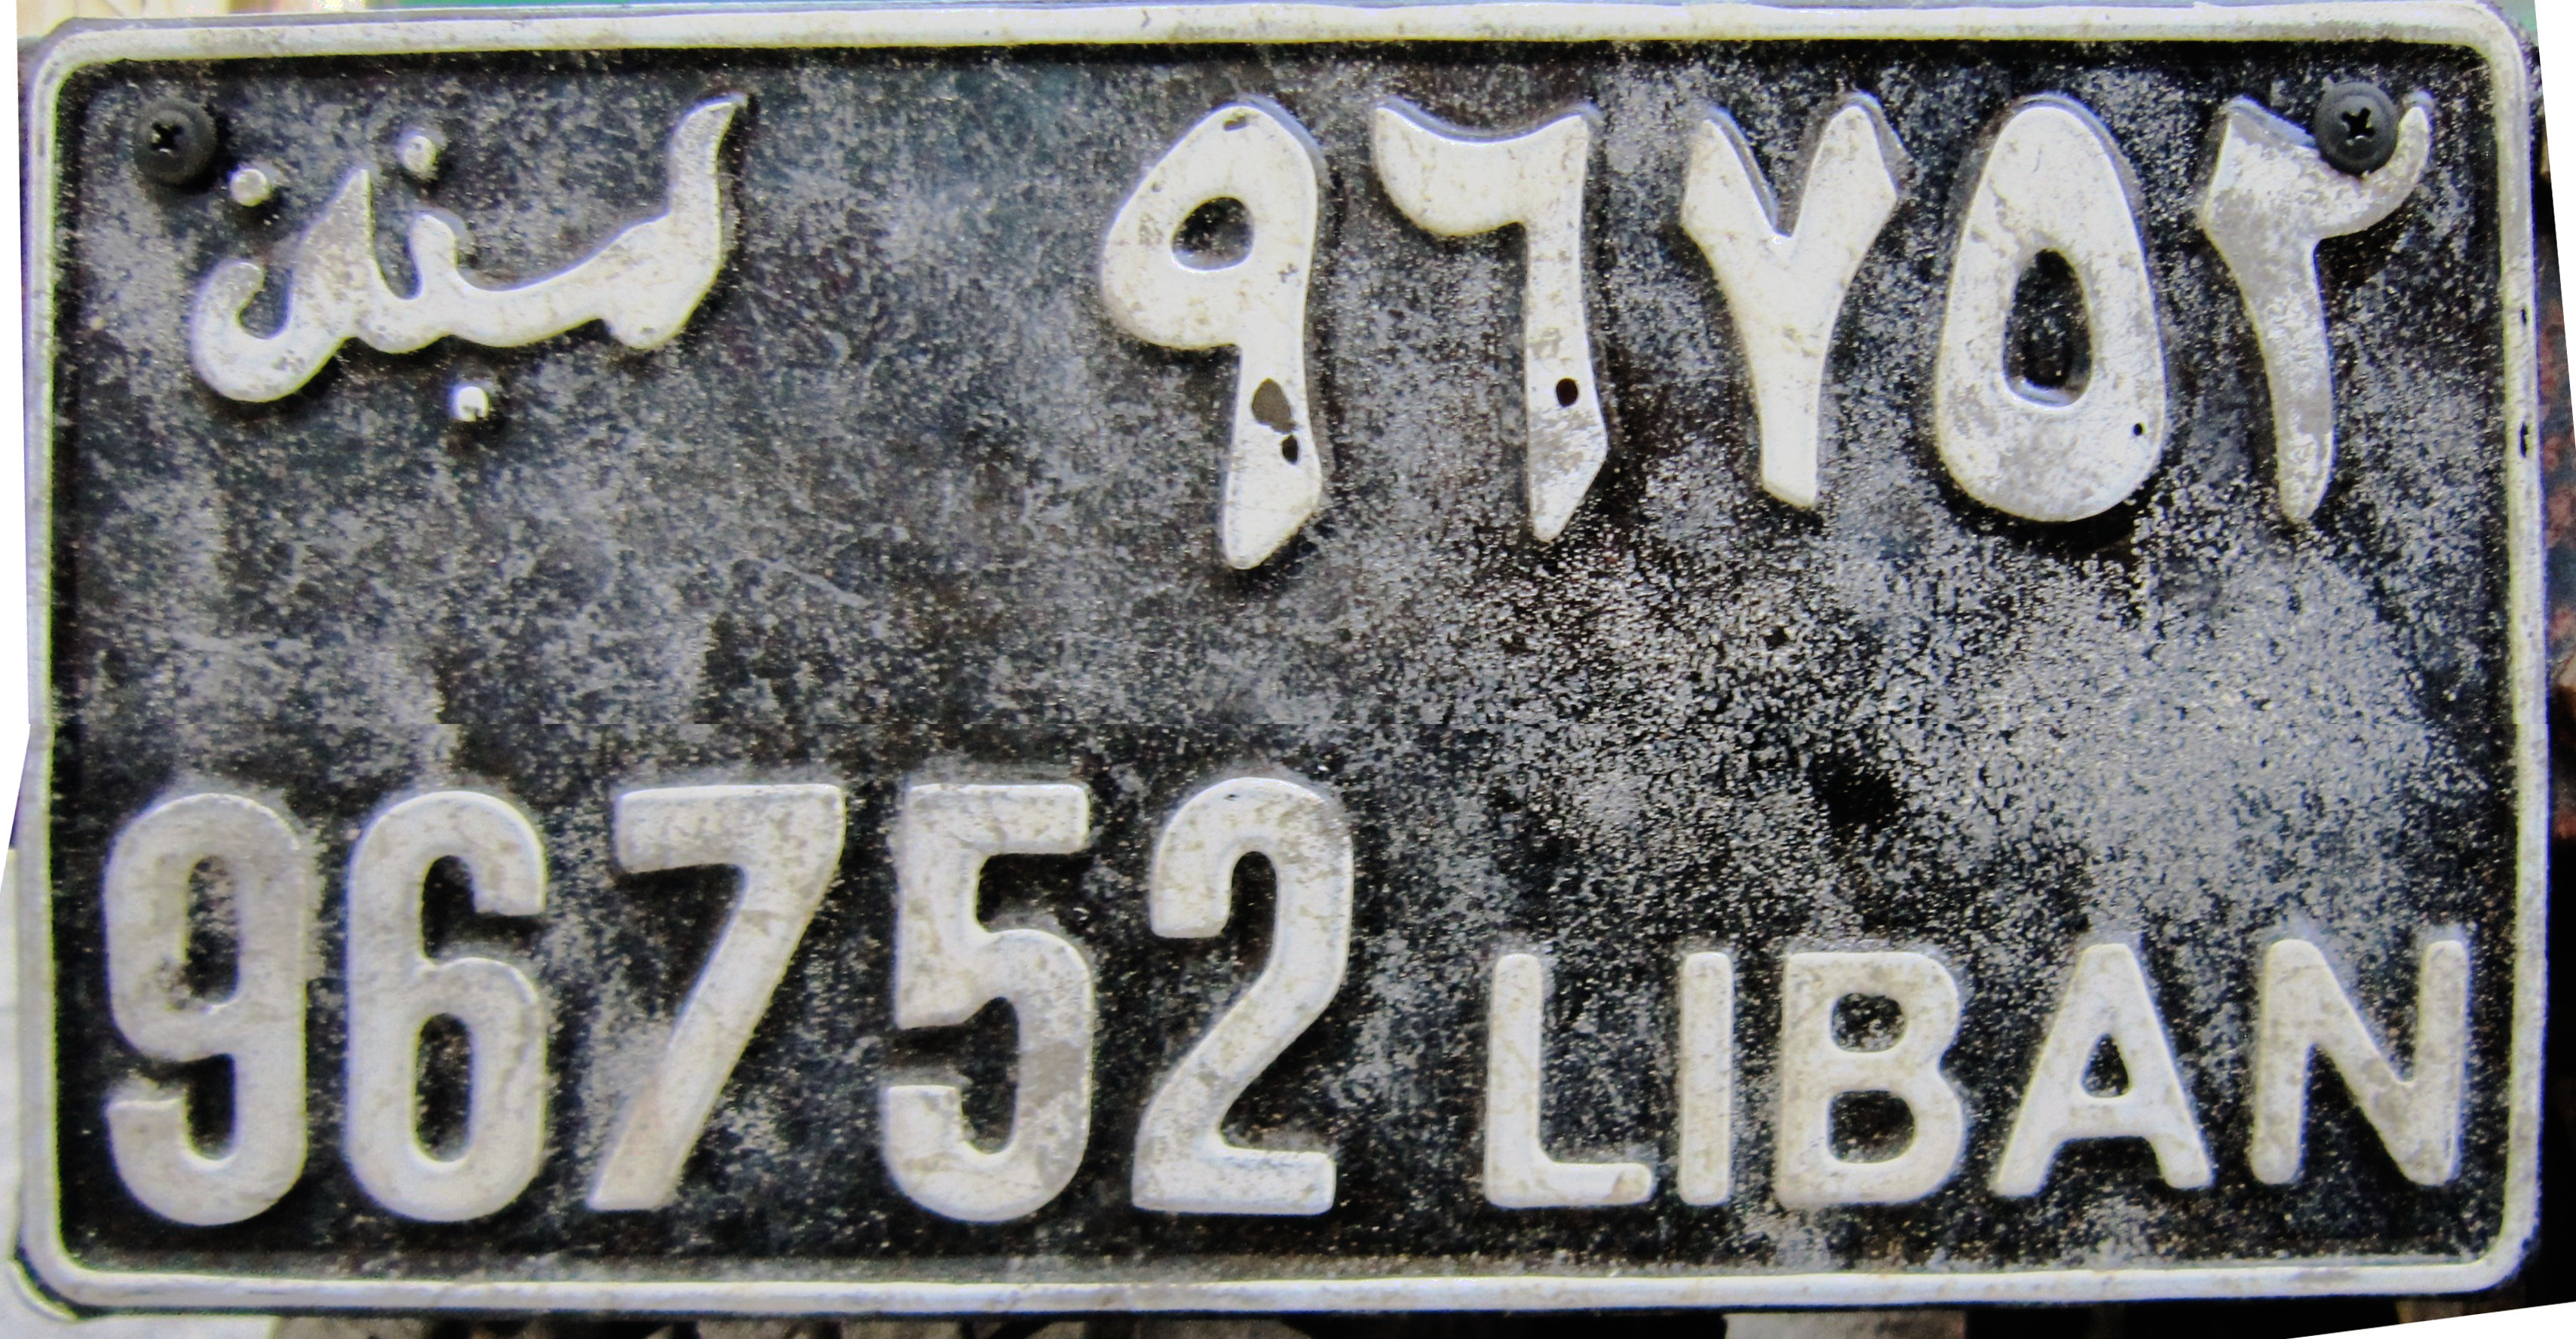 Get Car History From License Plate